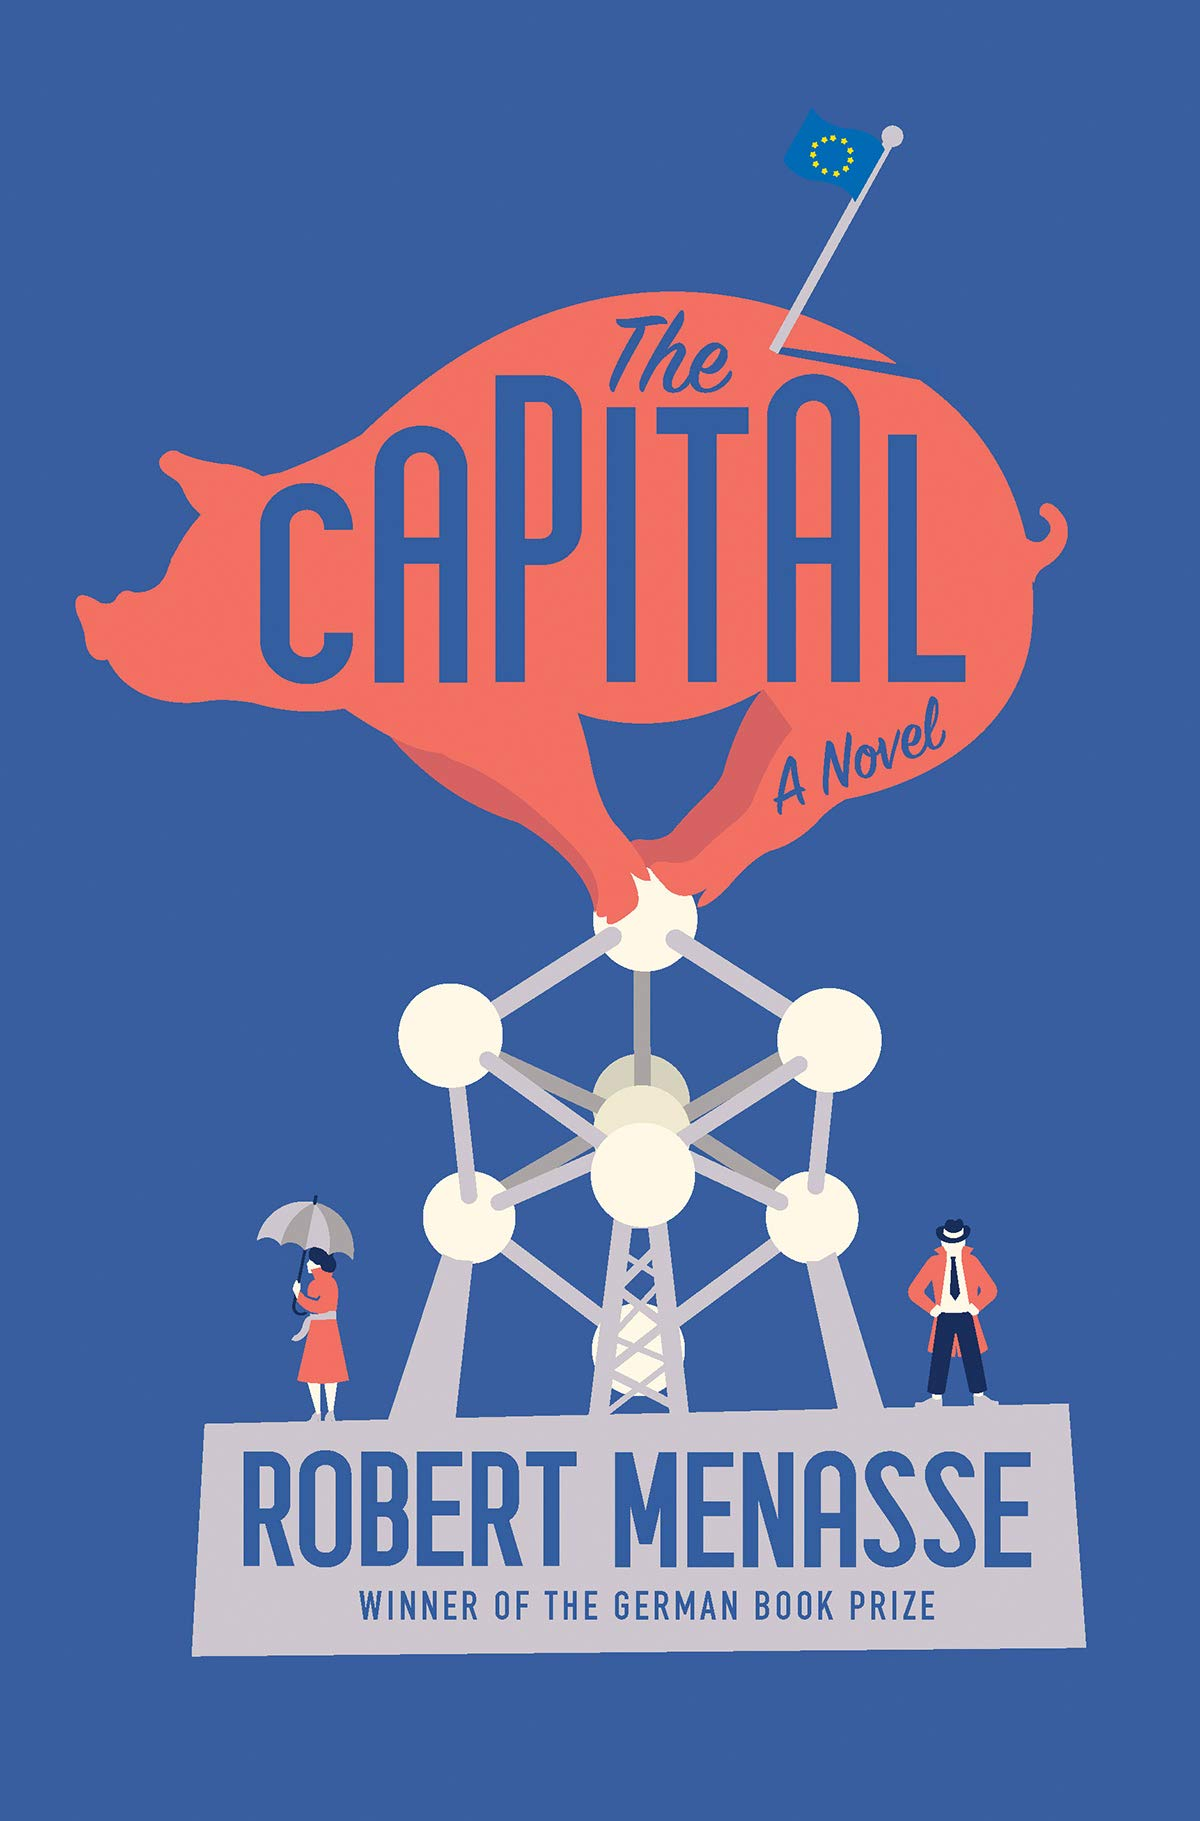 Image result for the capital robert menasse